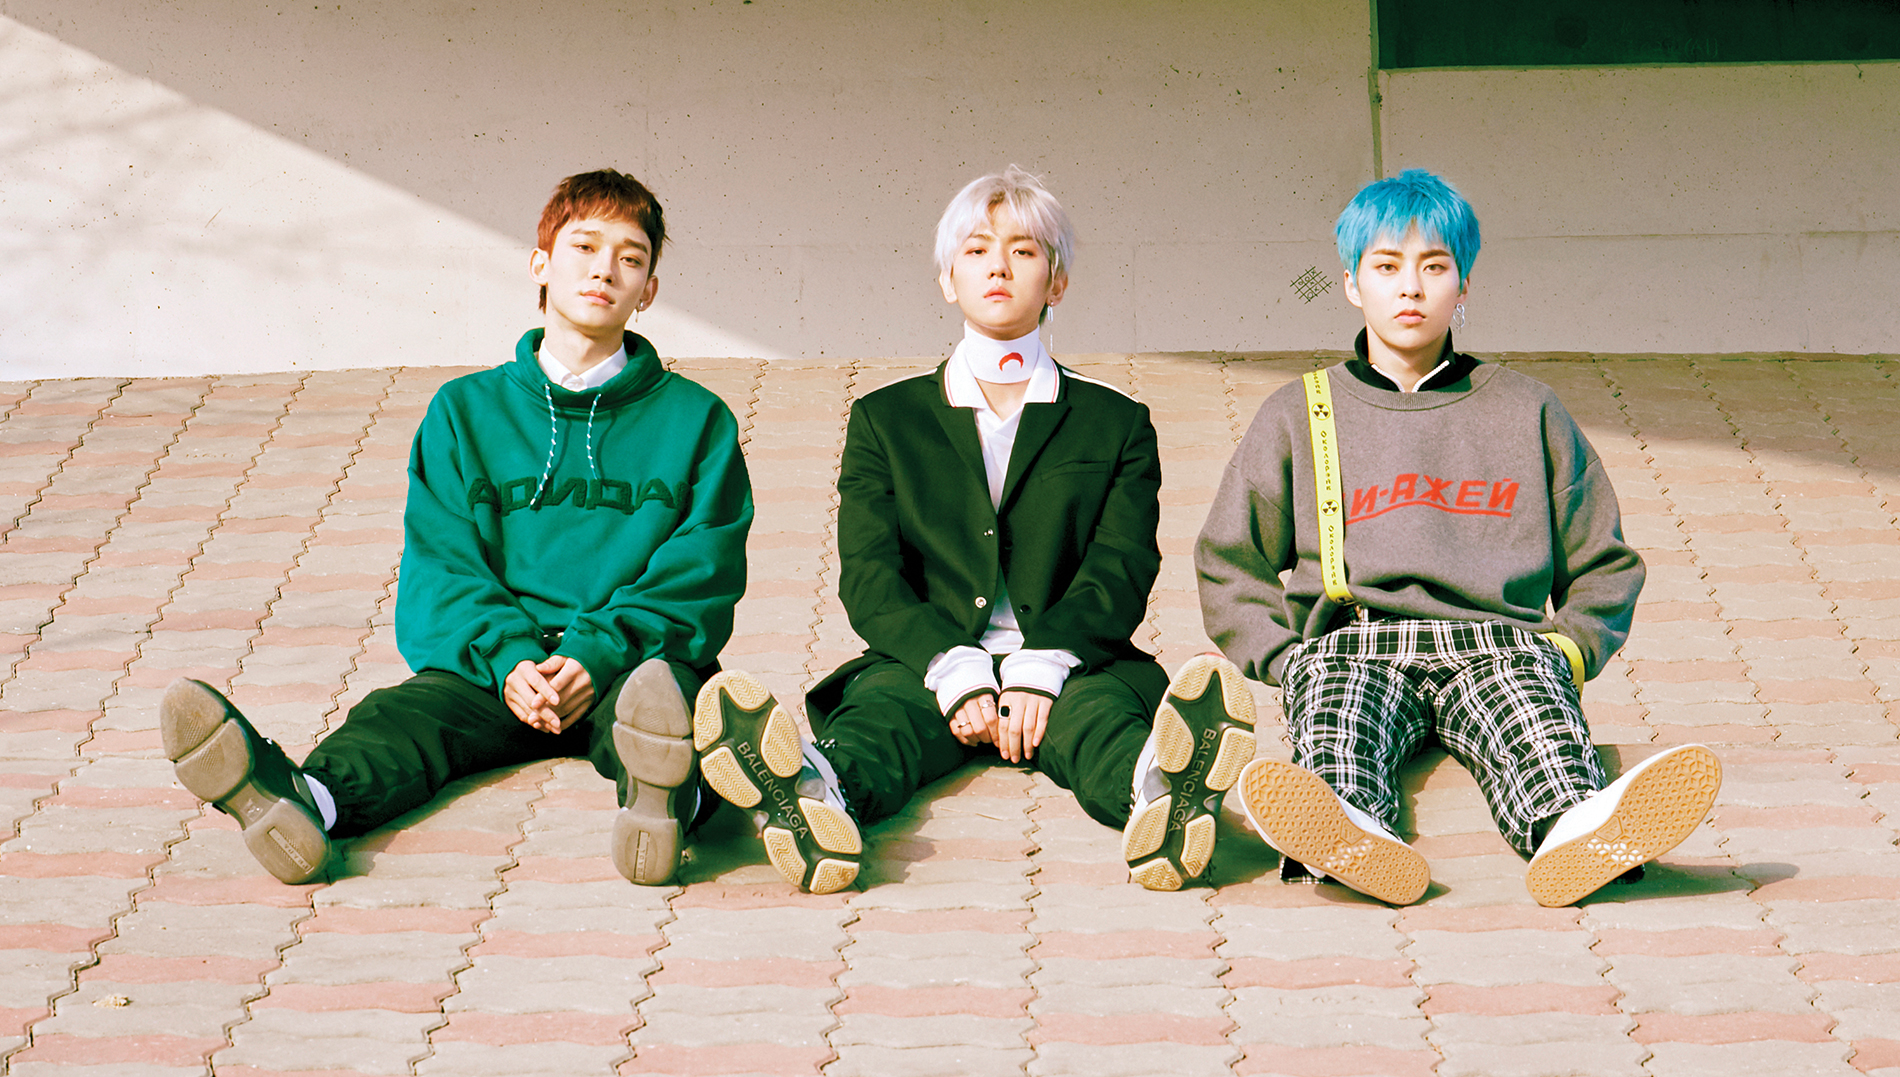 Lirik Lagu Exo Cbx Vroom Vroom Hangul Romanization English